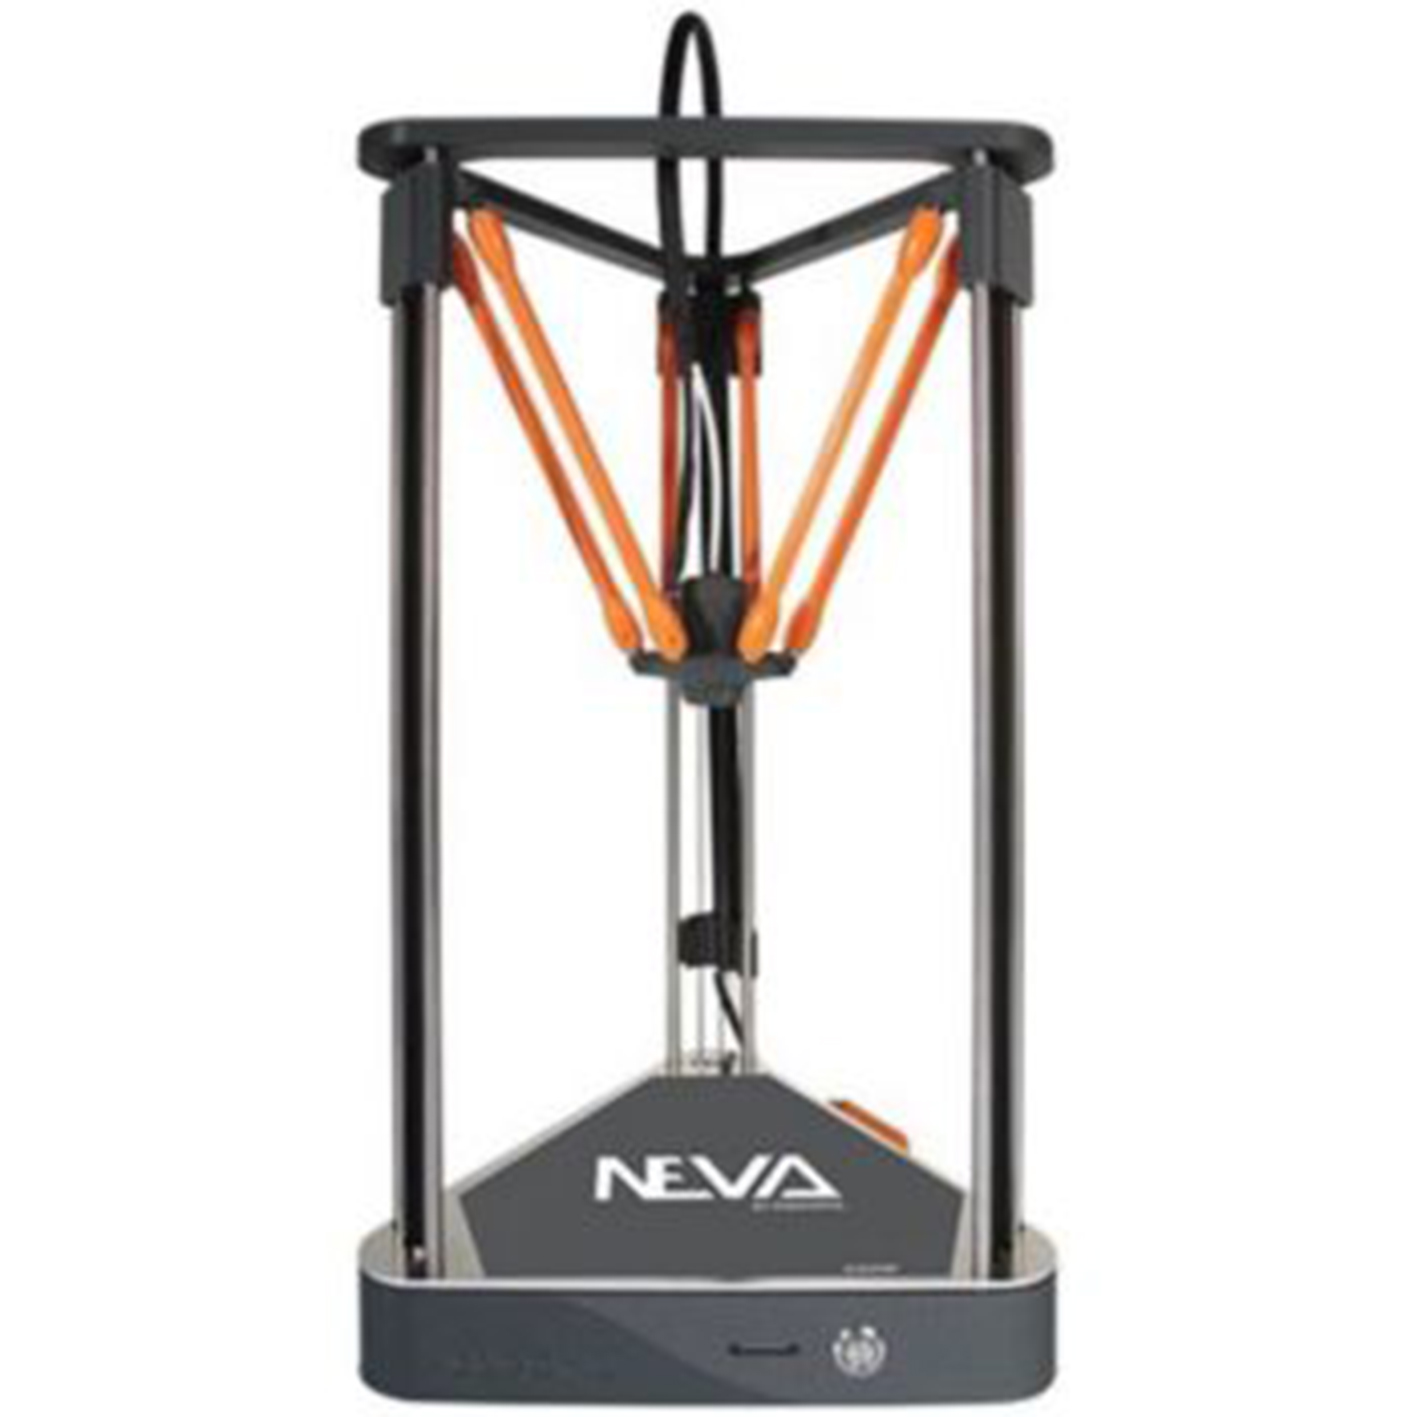 3d printer air filter - Dagoma Neva